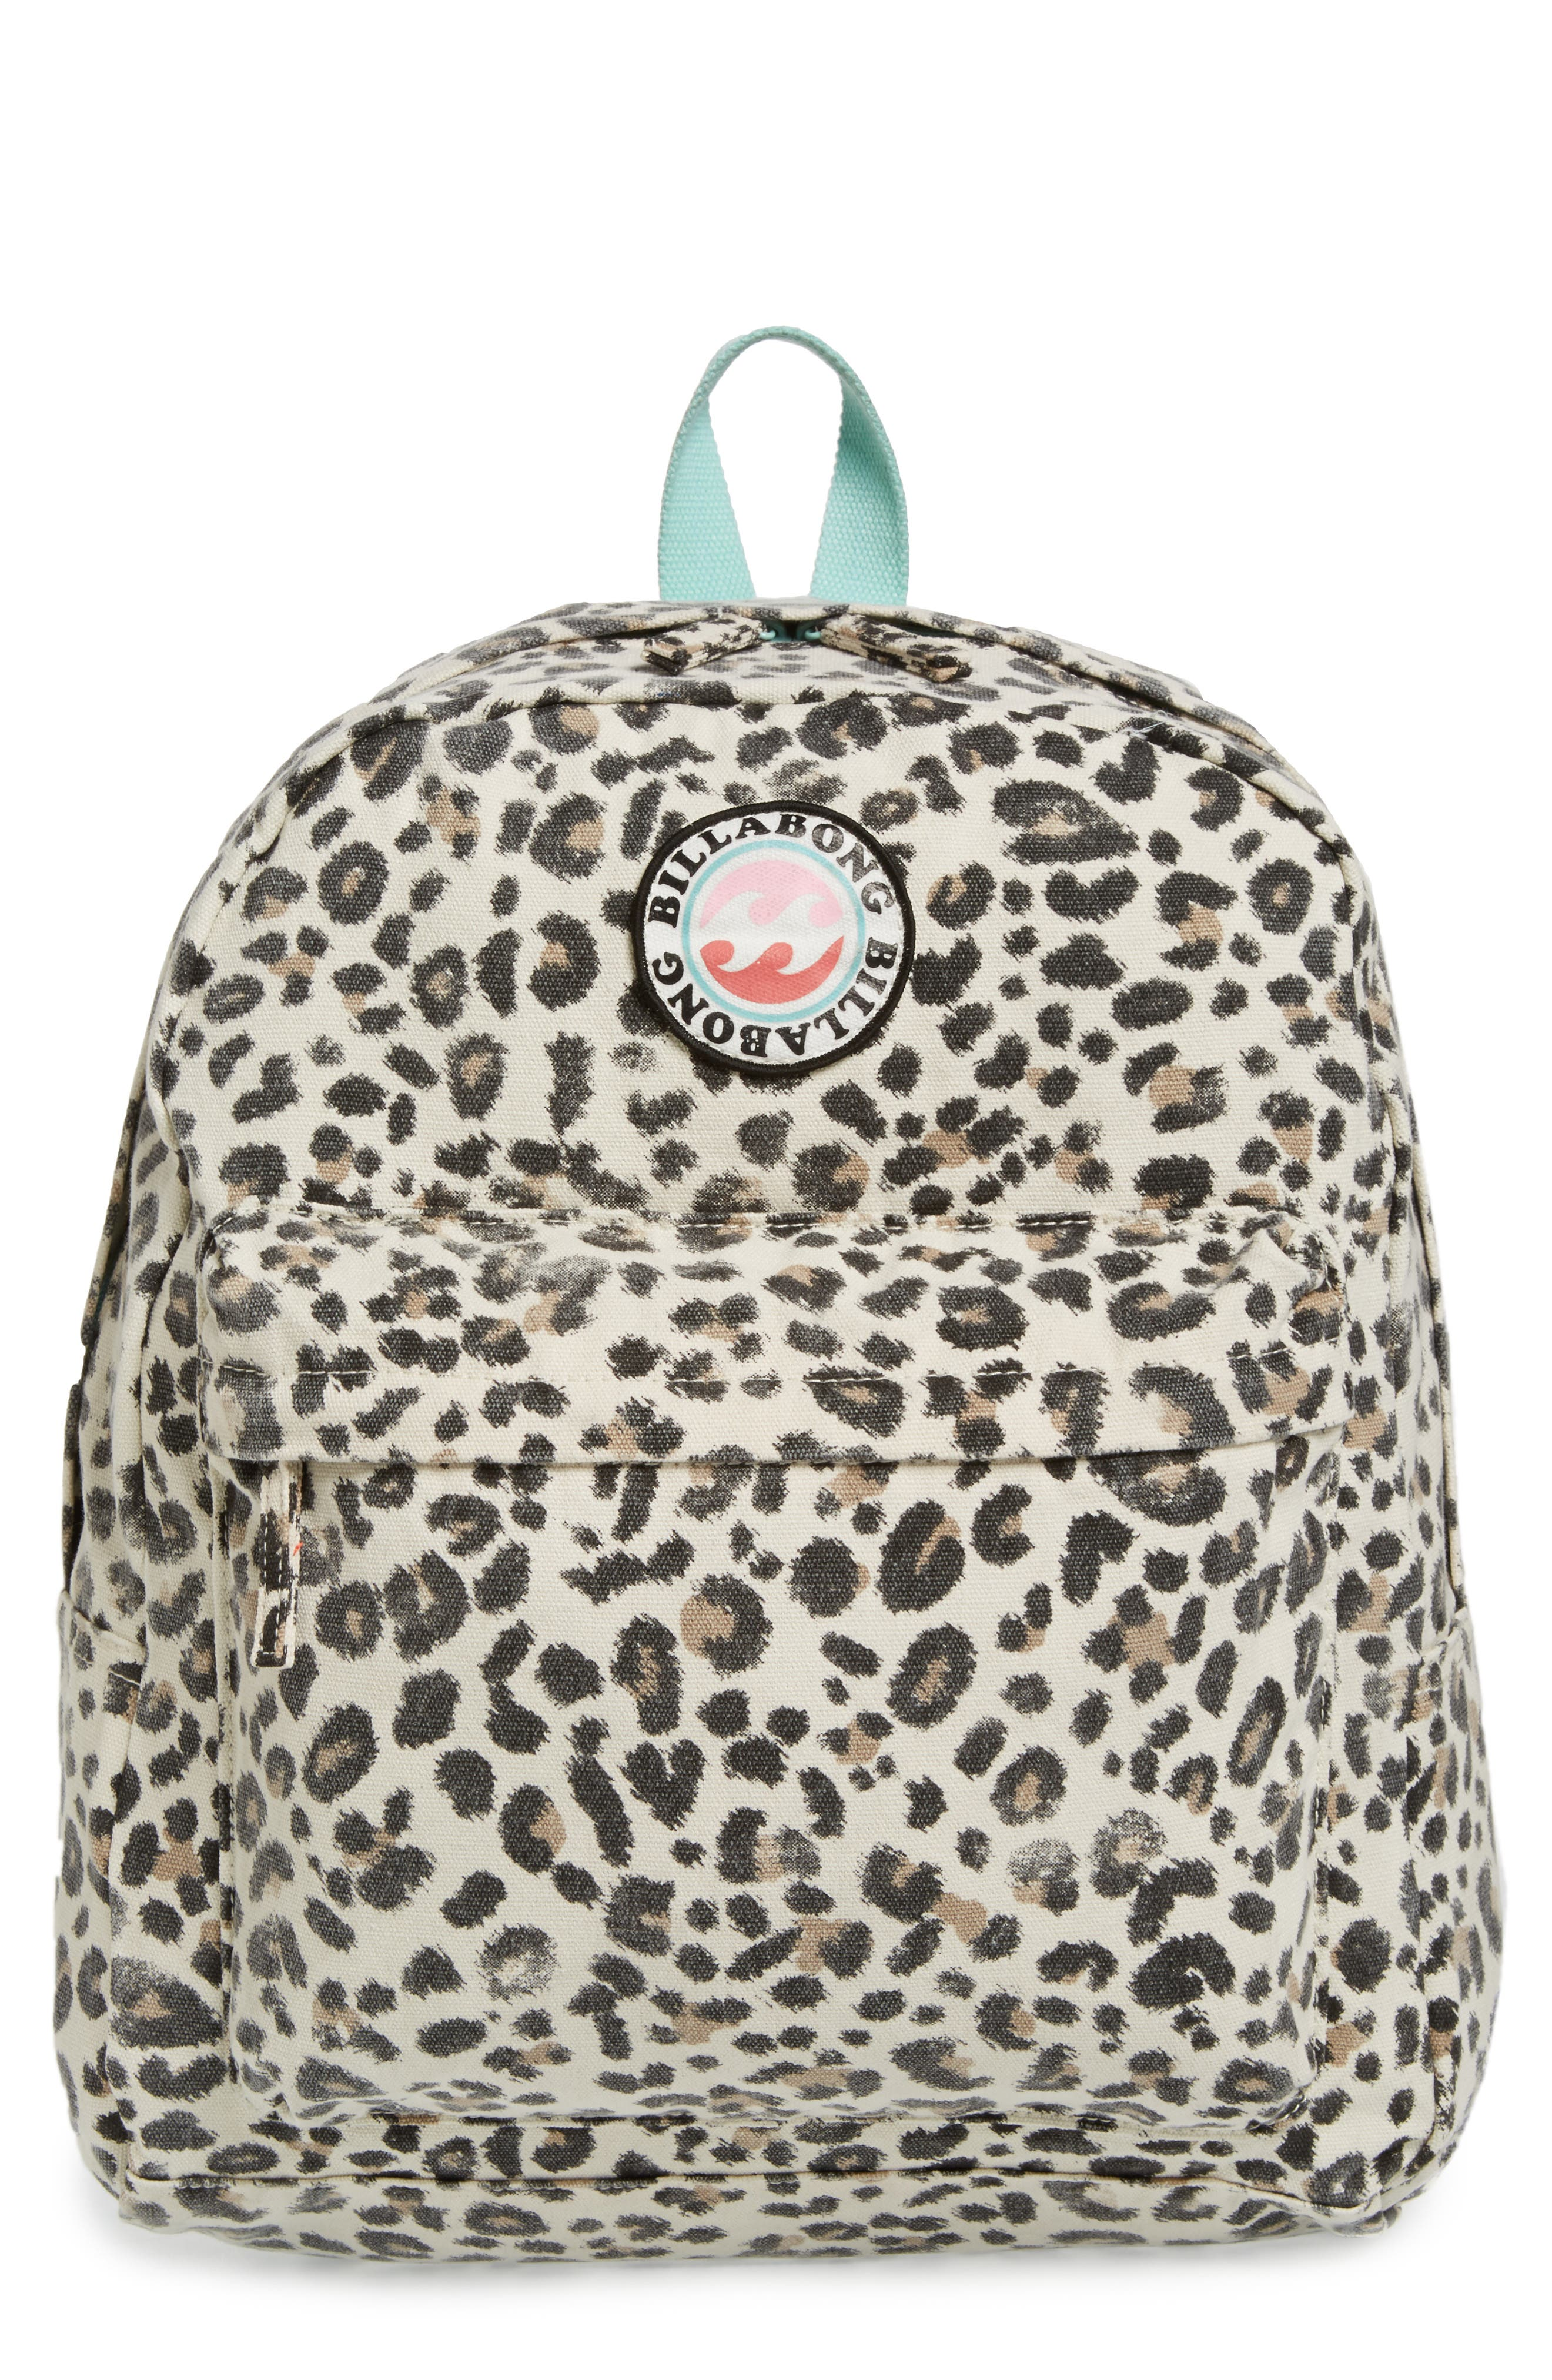 Play Date Canvas Backpack,                             Main thumbnail 1, color,                             004